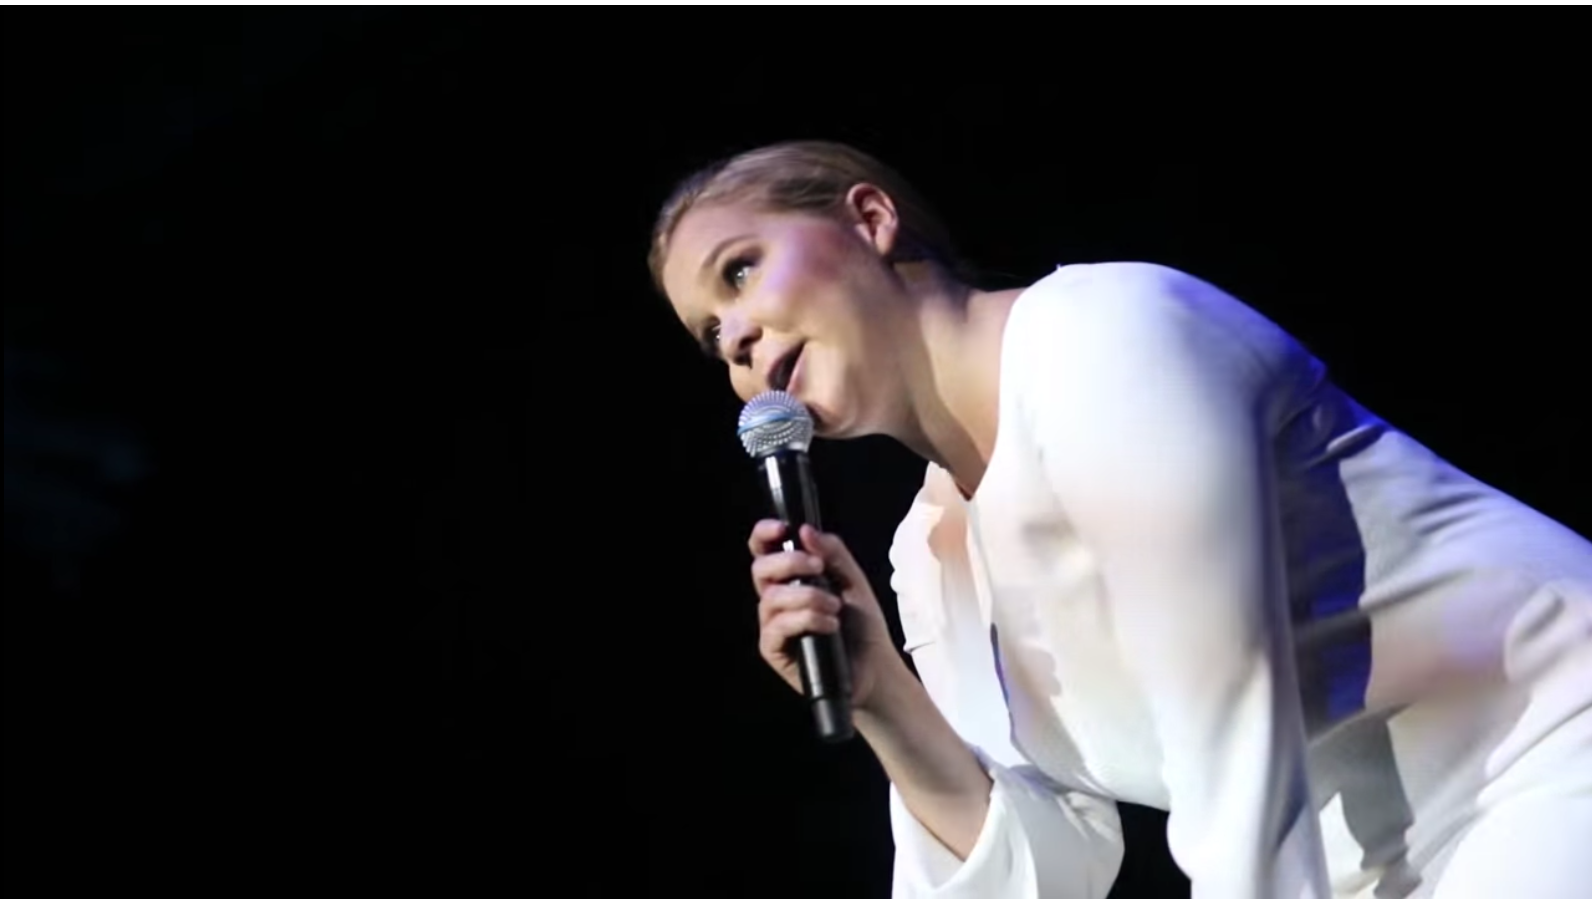 Amy Schumer Tit Pics amy schumer calls out heckler who yelled 'show us your tits